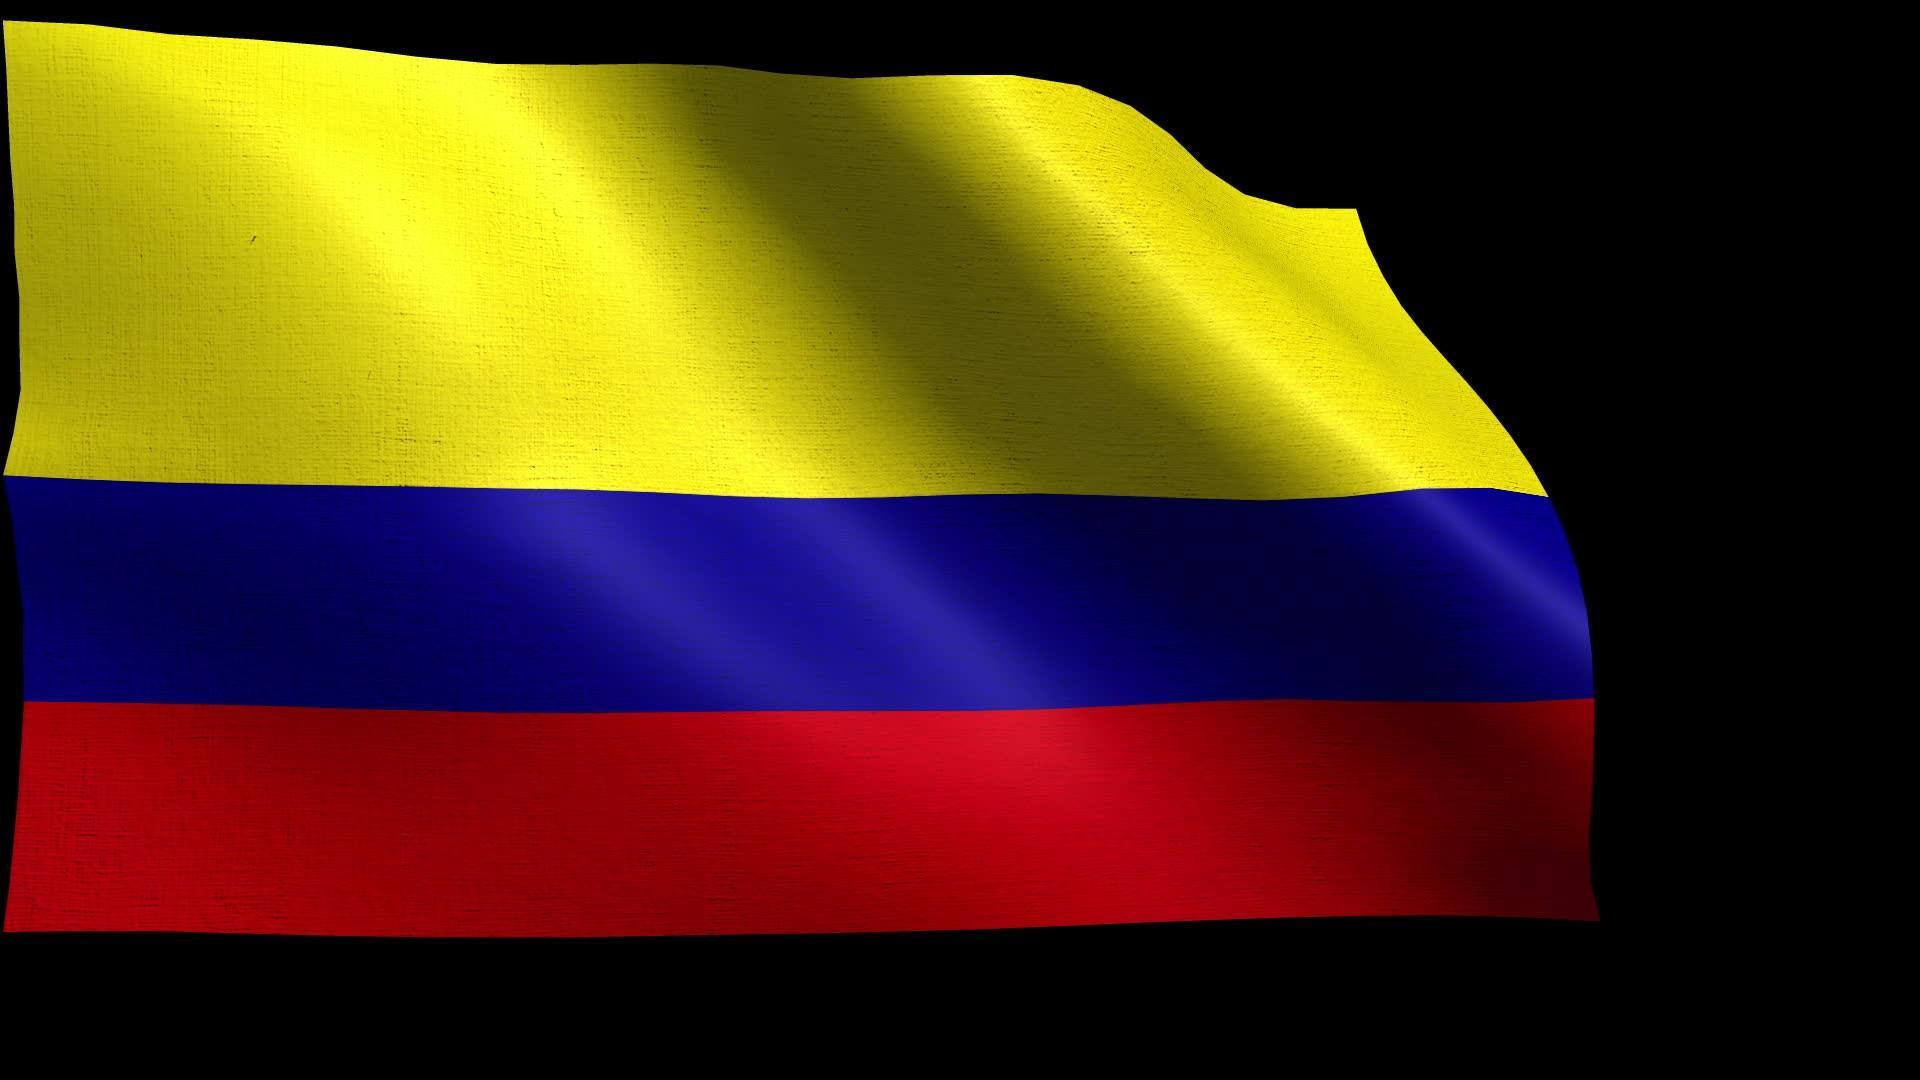 Colombia Flag Wallpapers Bandera Colombiana For Android Apk